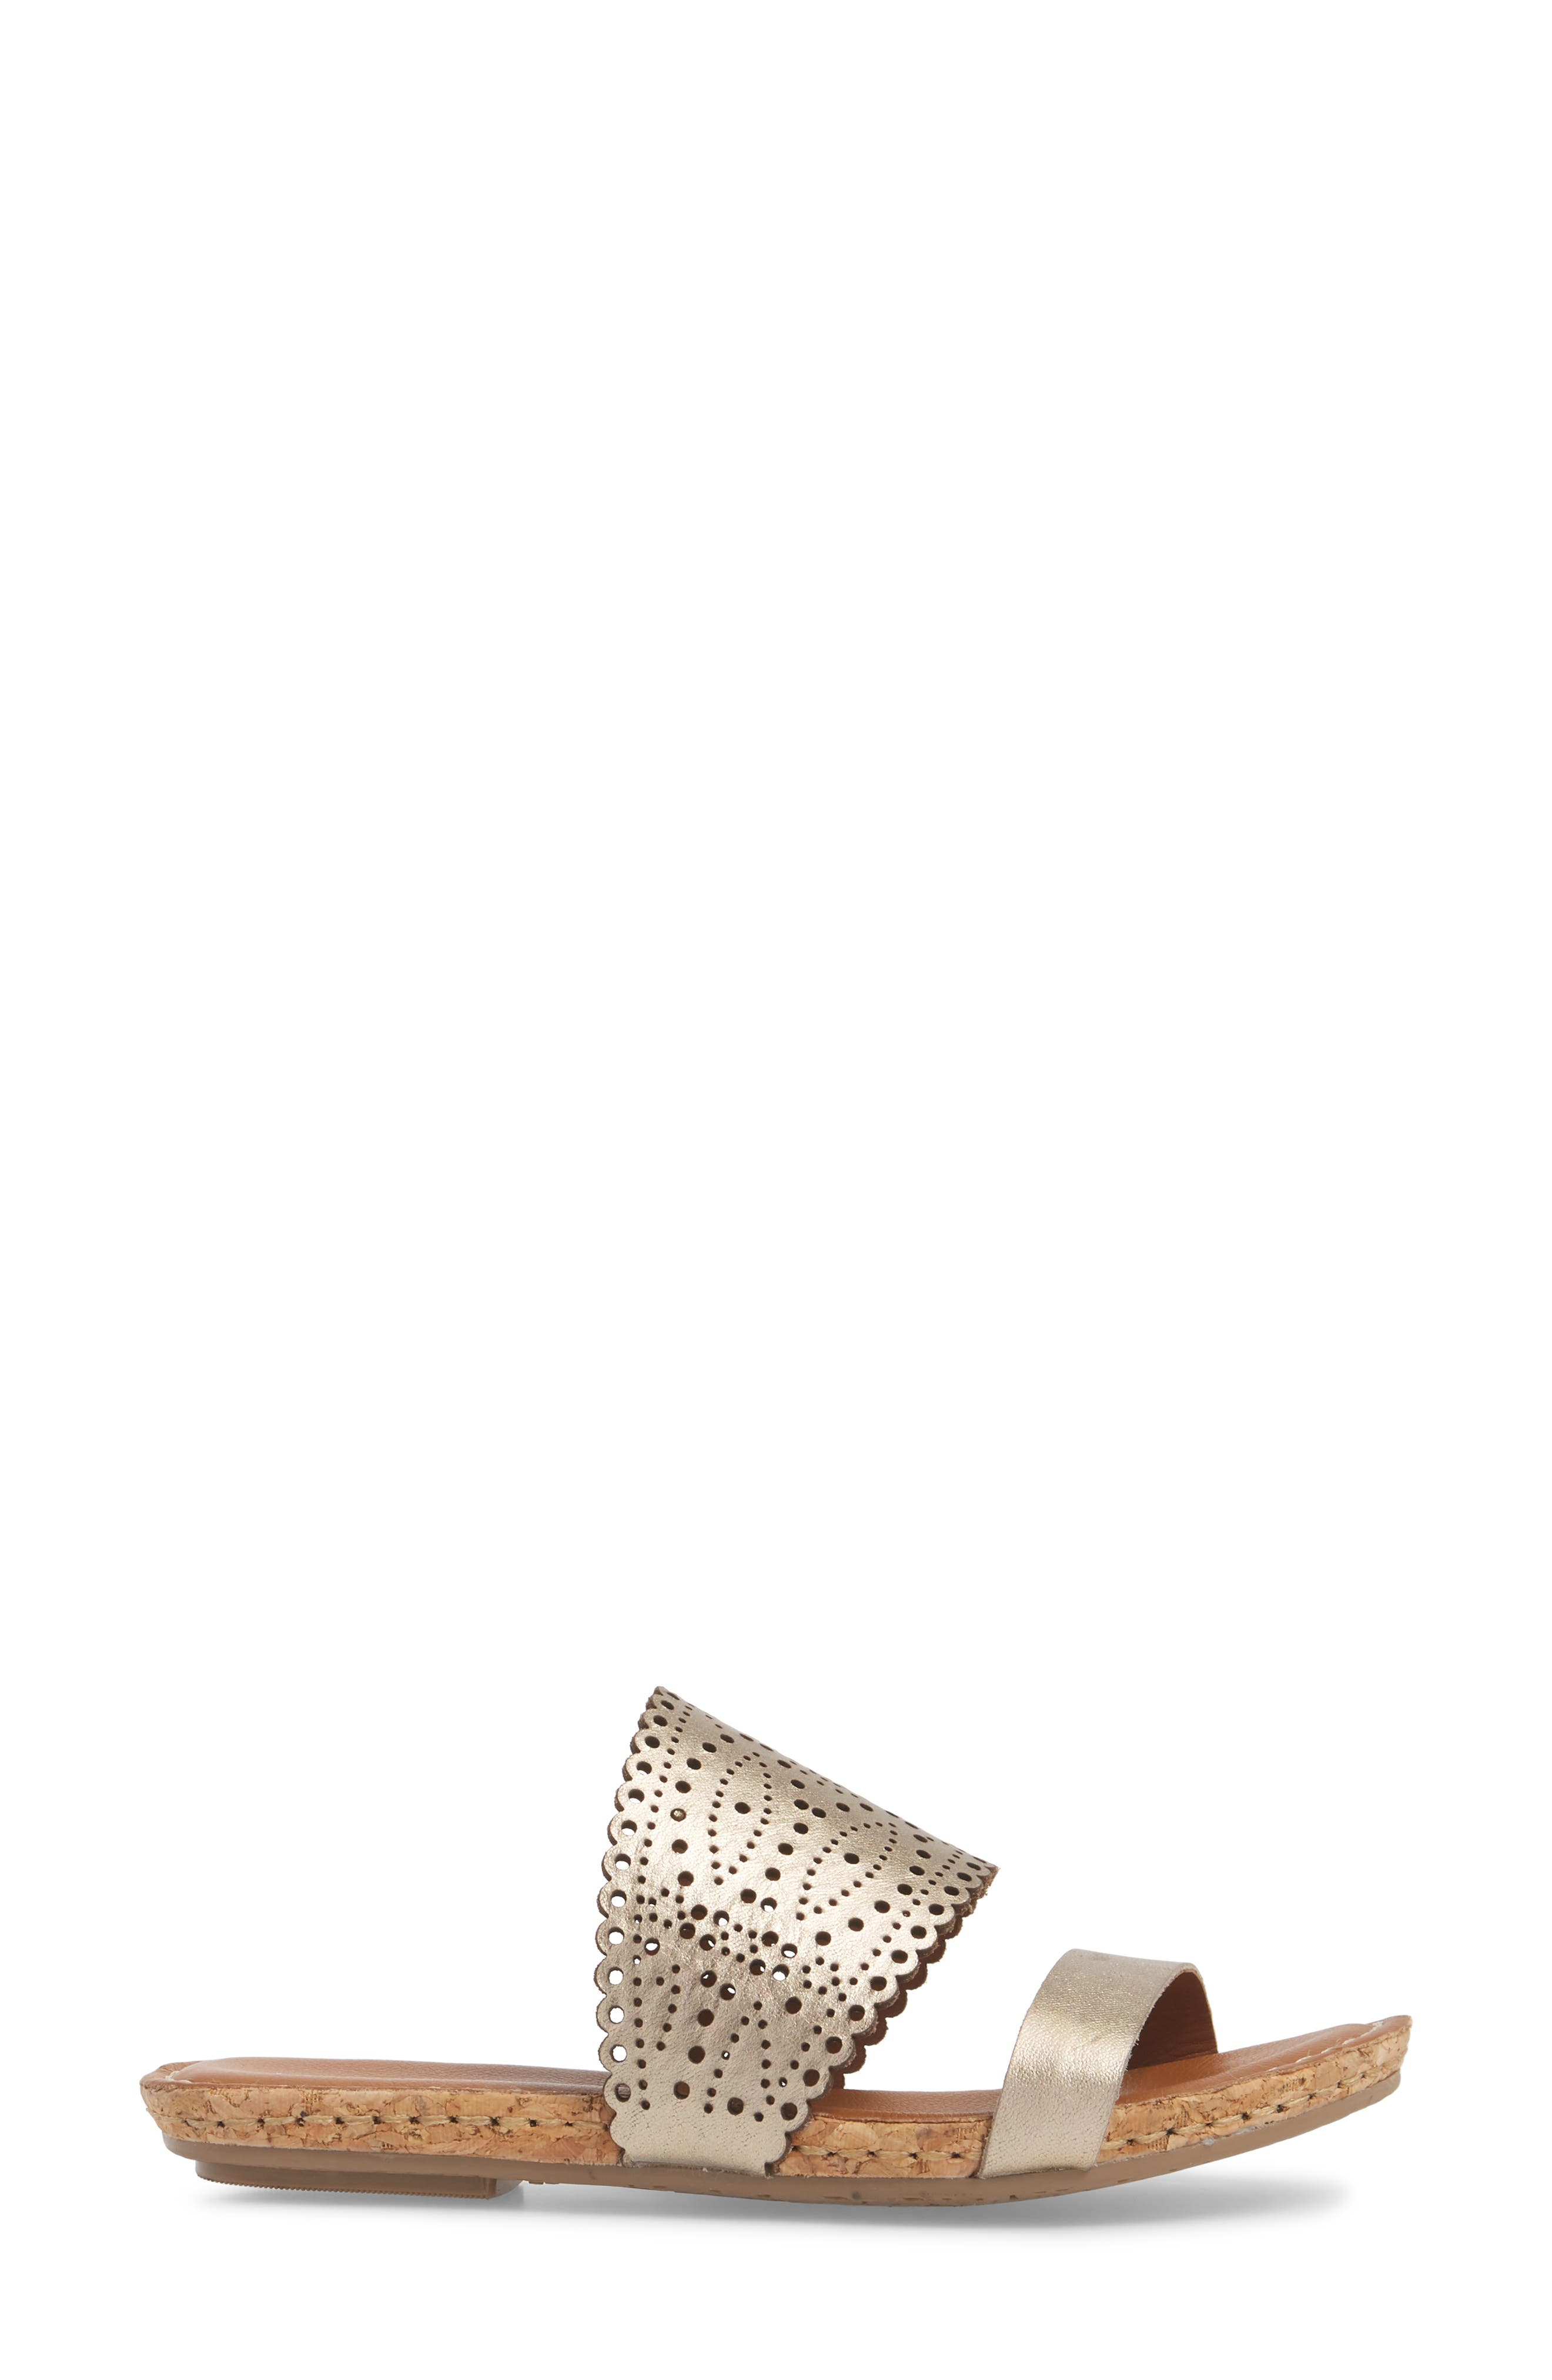 Ginette Perforated Slide Sandal,                             Alternate thumbnail 3, color,                             PEWTER LEATHER